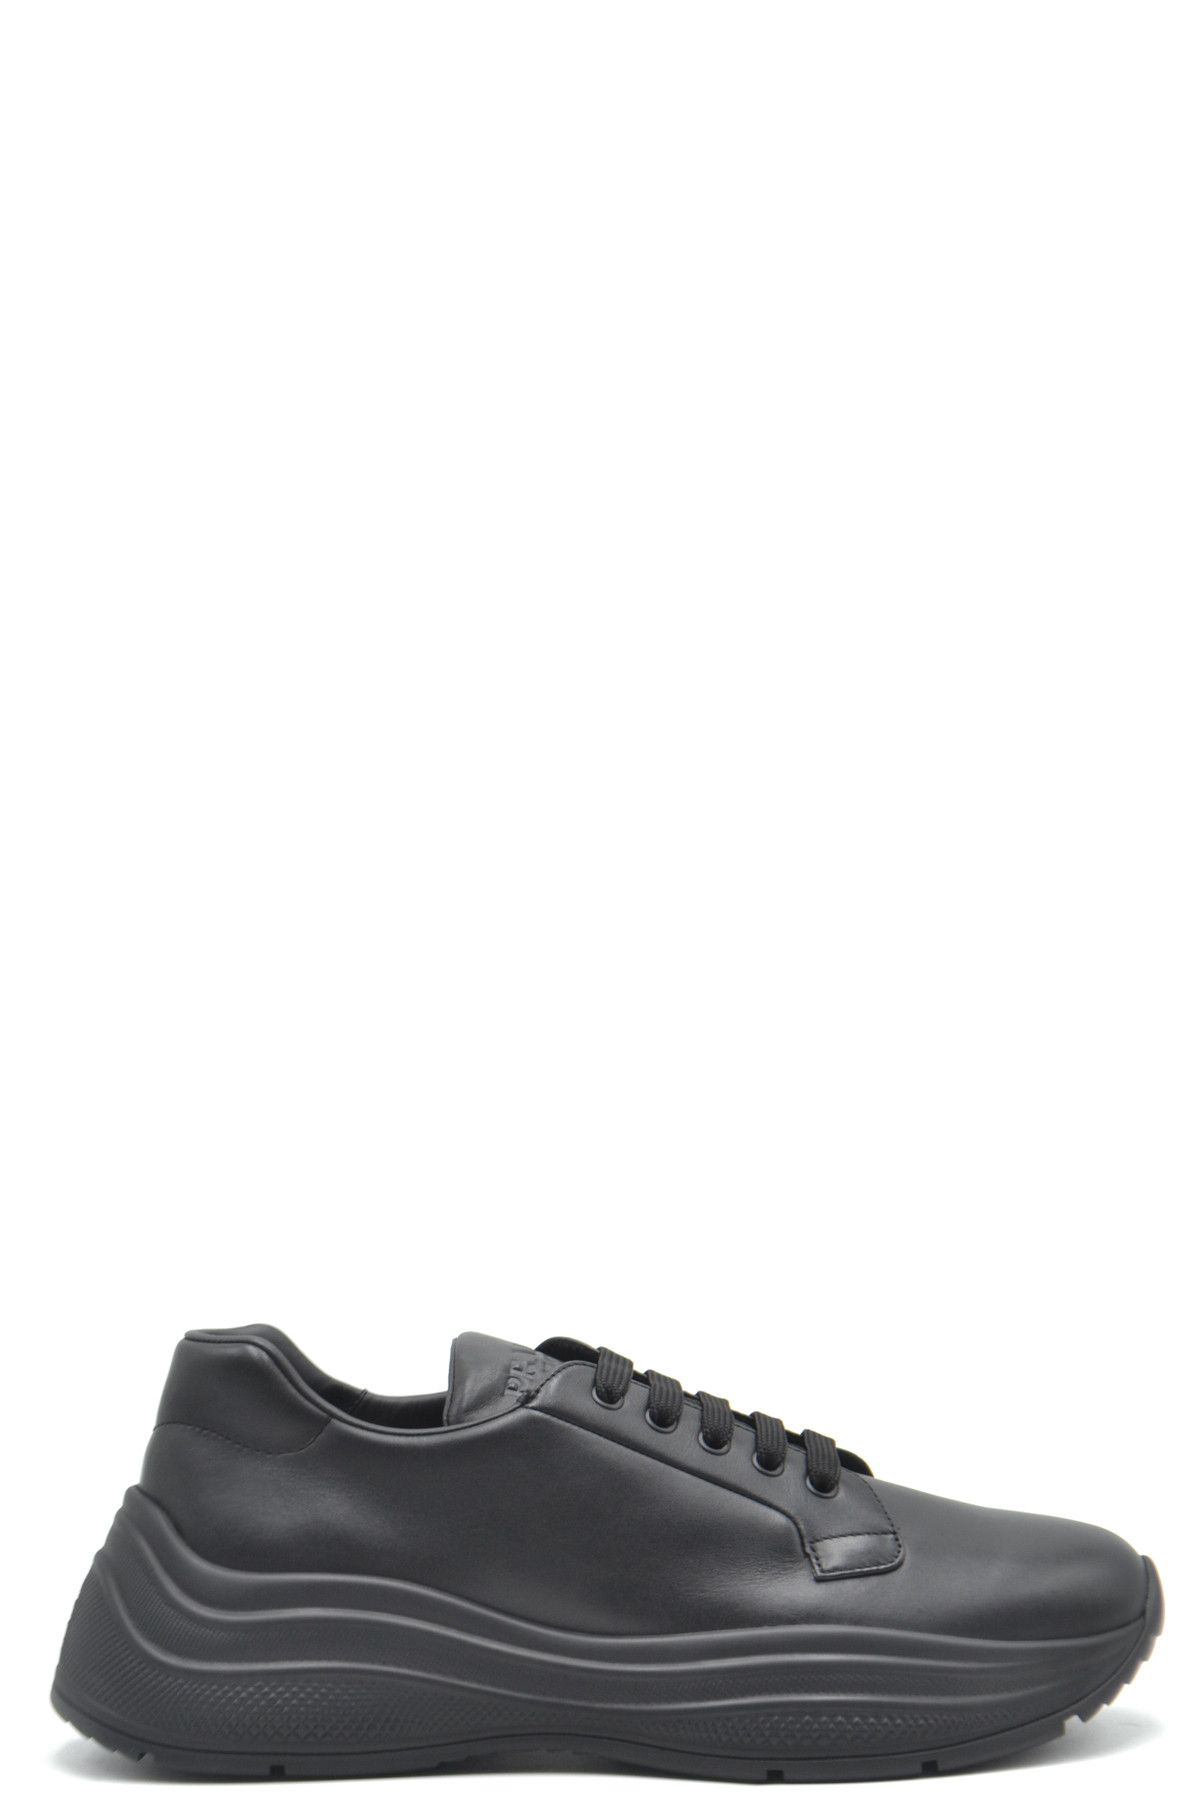 Prada Men's Sneakers In Black